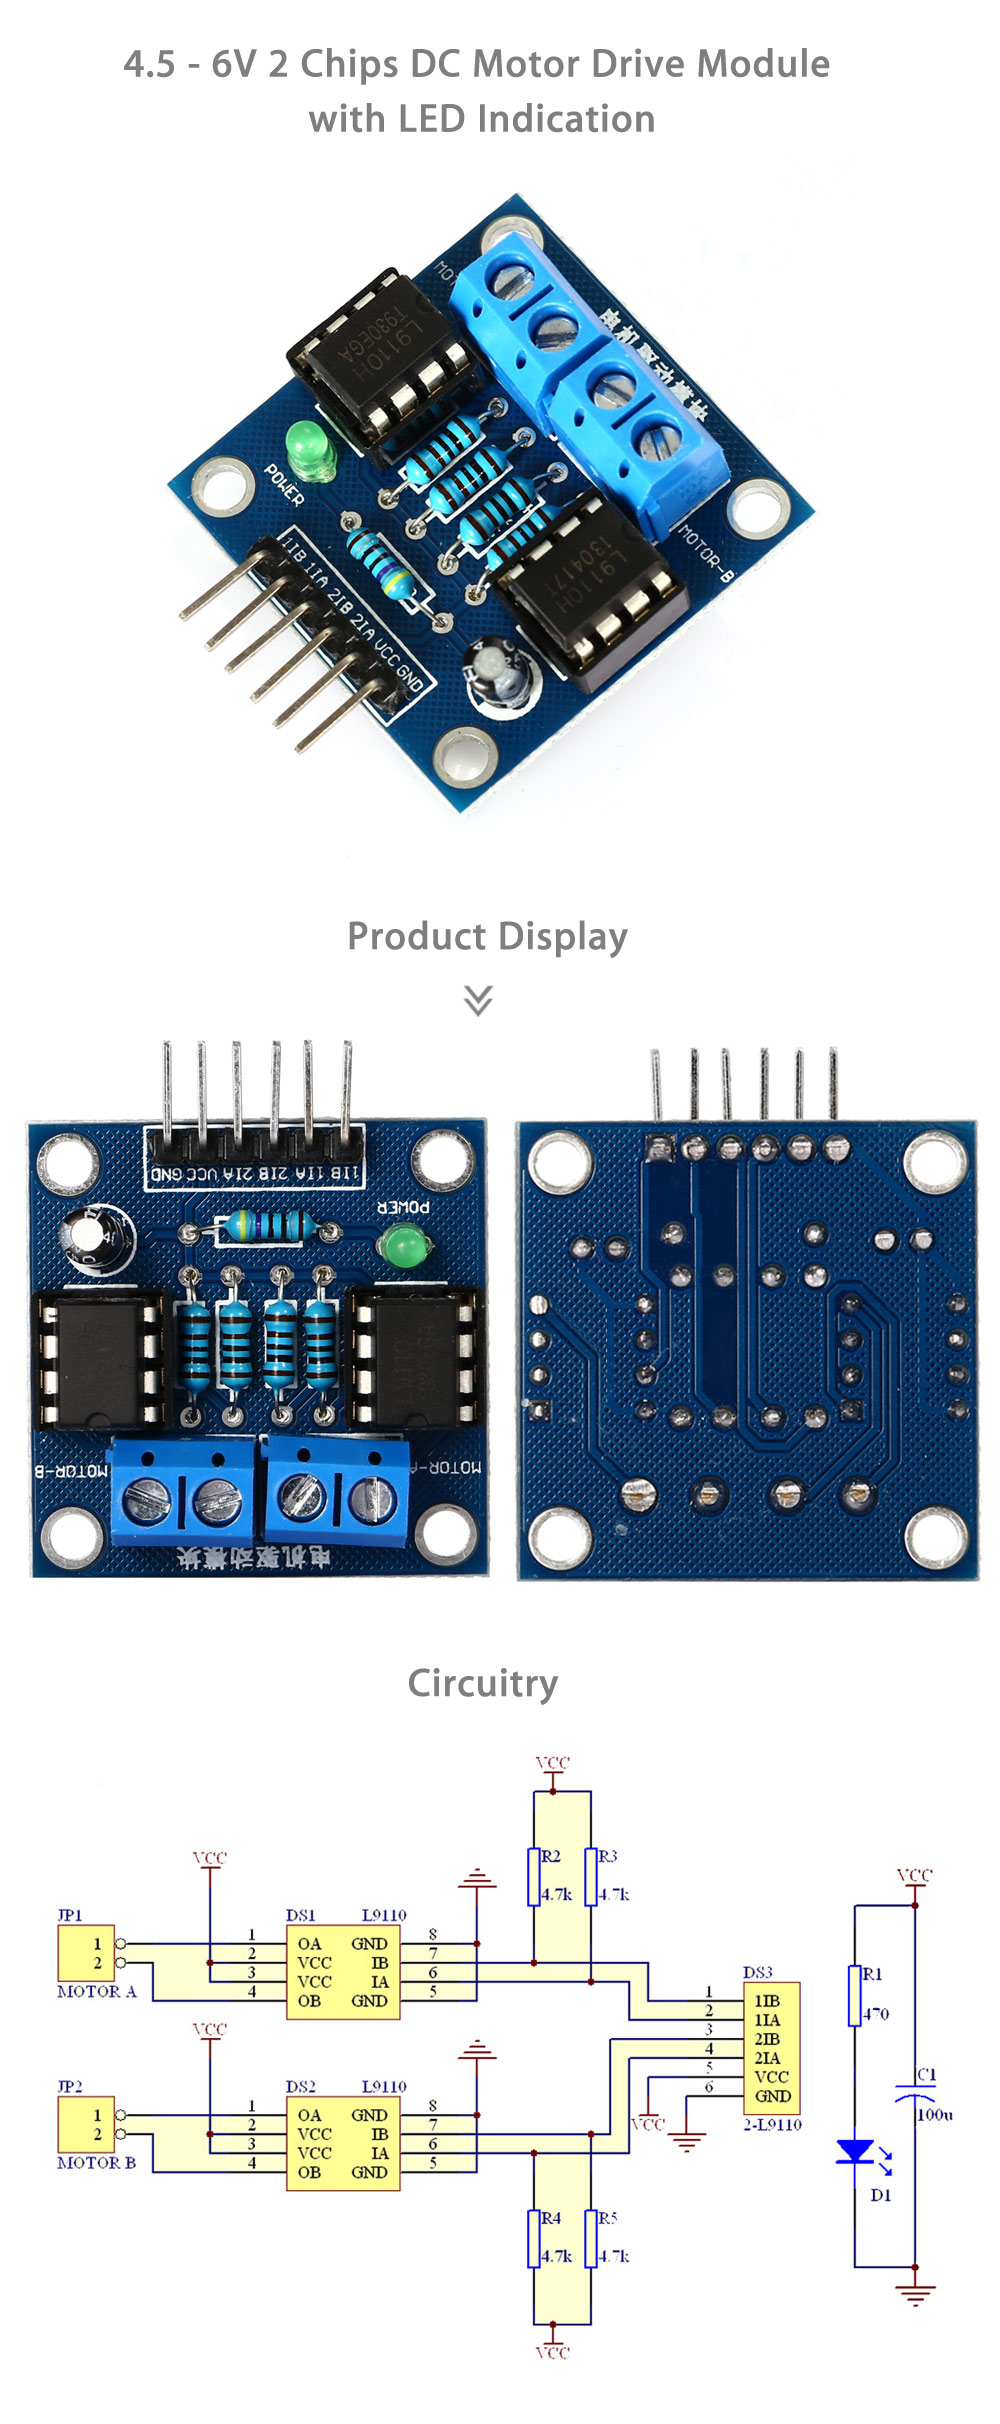 LDTR - B0007 4.5 - 6V 2 Chips DC Motor Drive Module with LED Indication